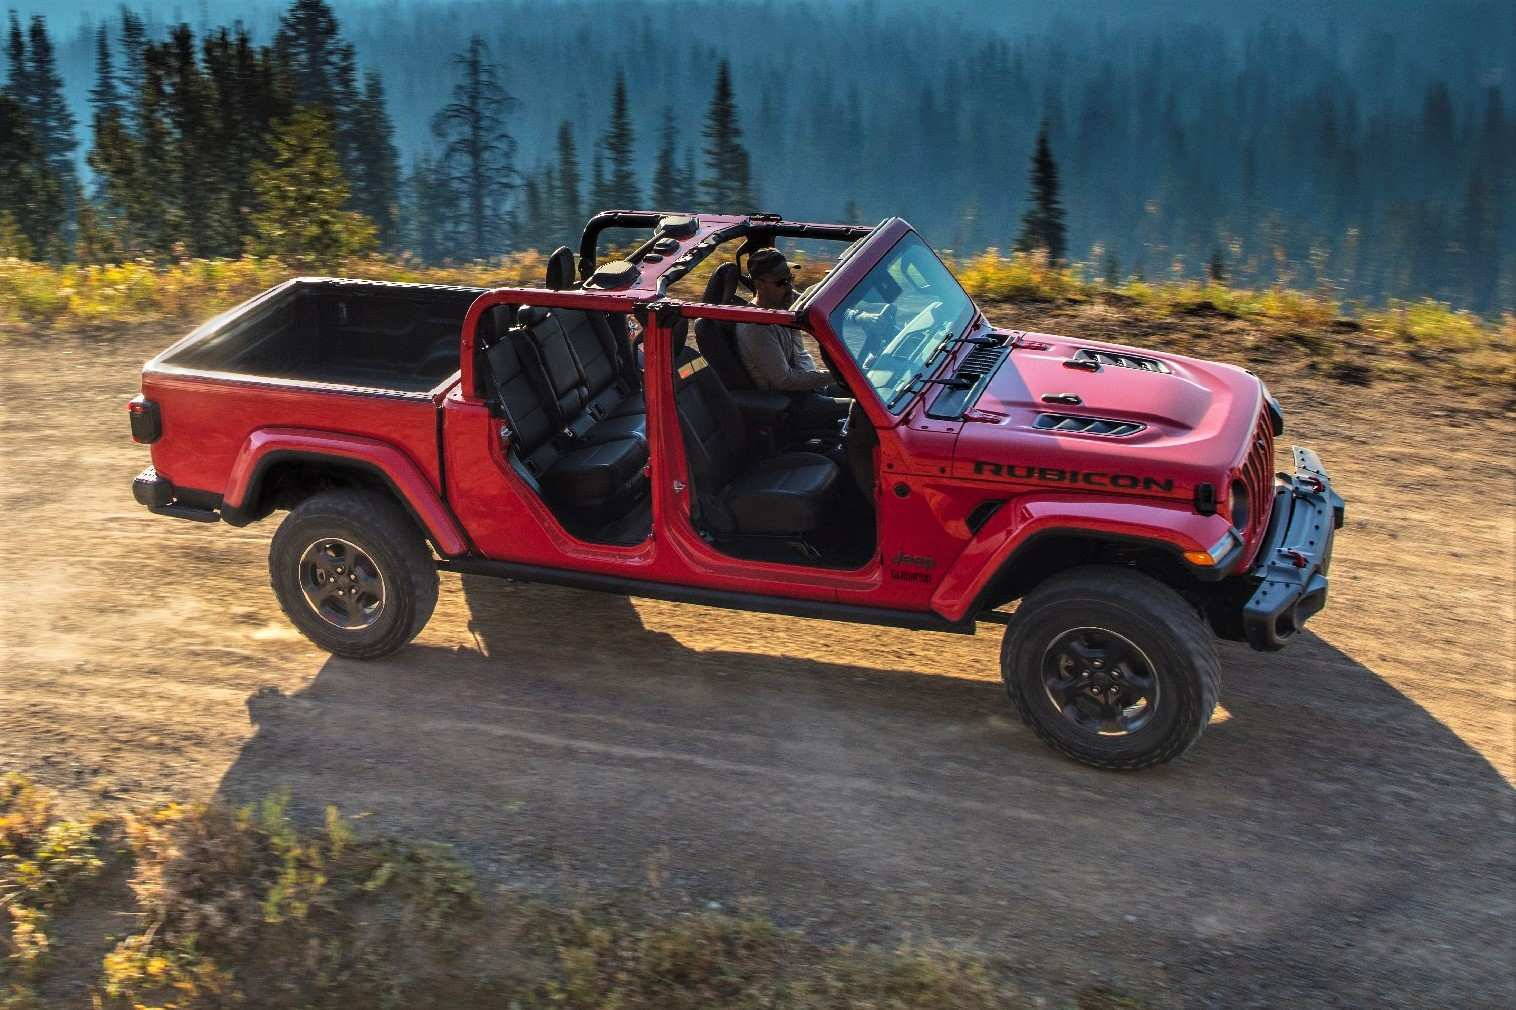 48 All New Jeep Gladiator Images 2020 Exterior and Interior for Jeep Gladiator Images 2020